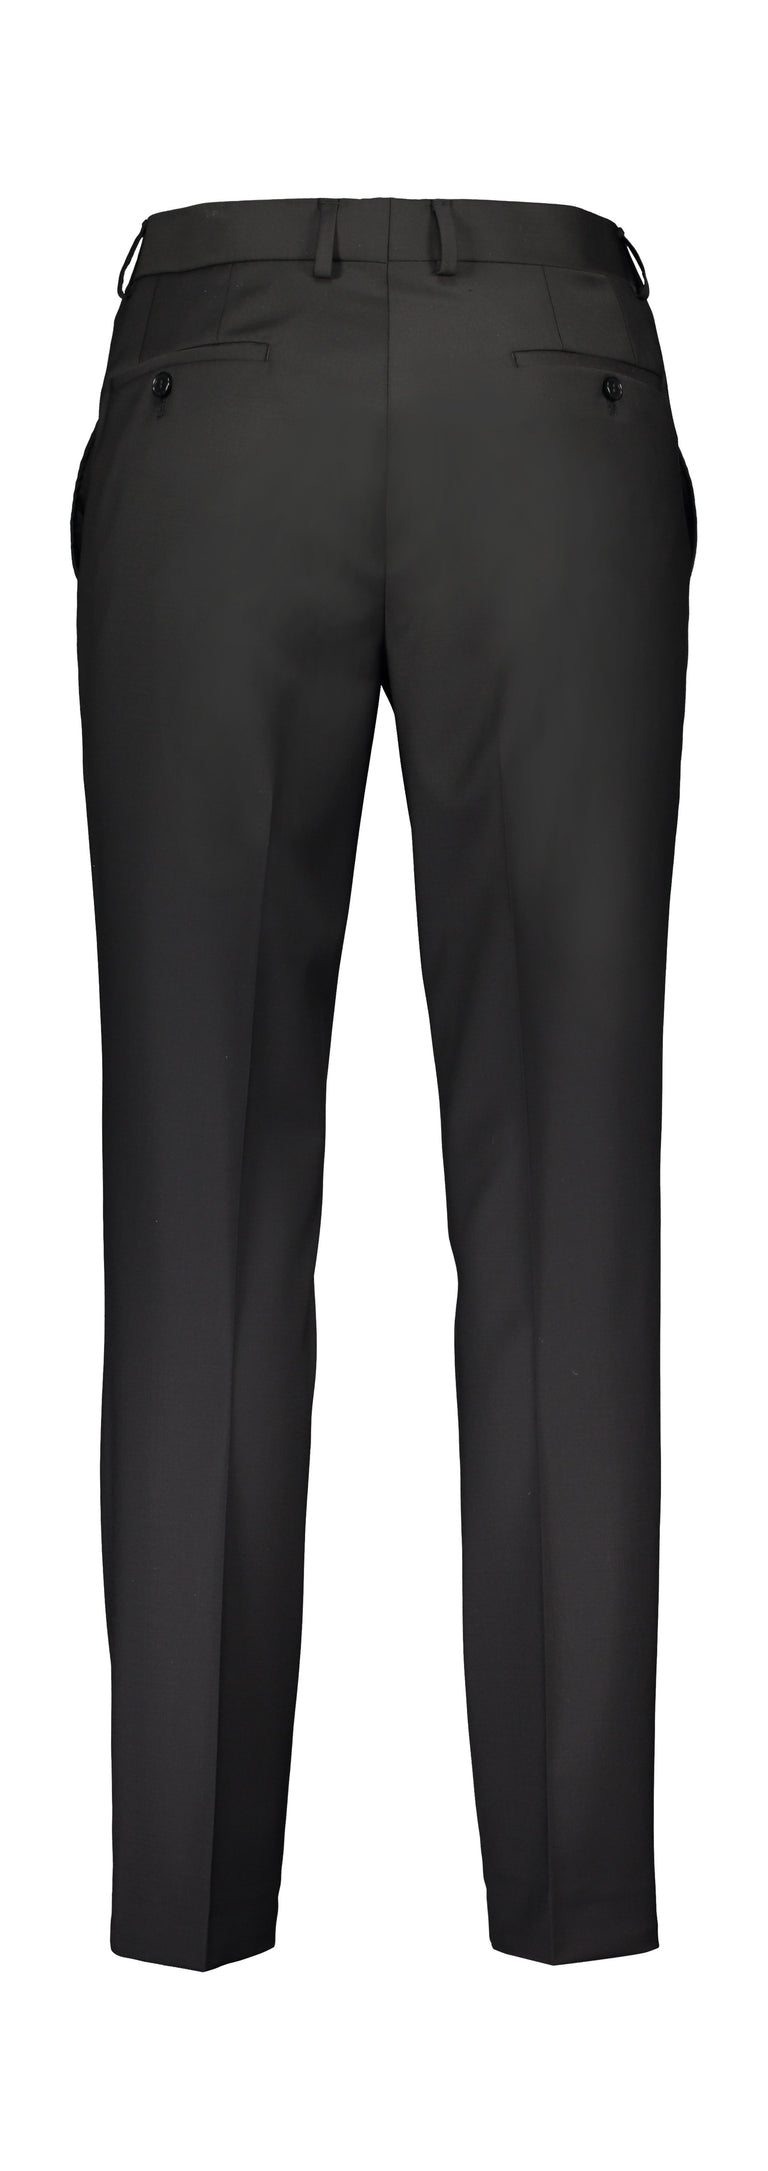 Extra slim fit trousers black (1446910591038)